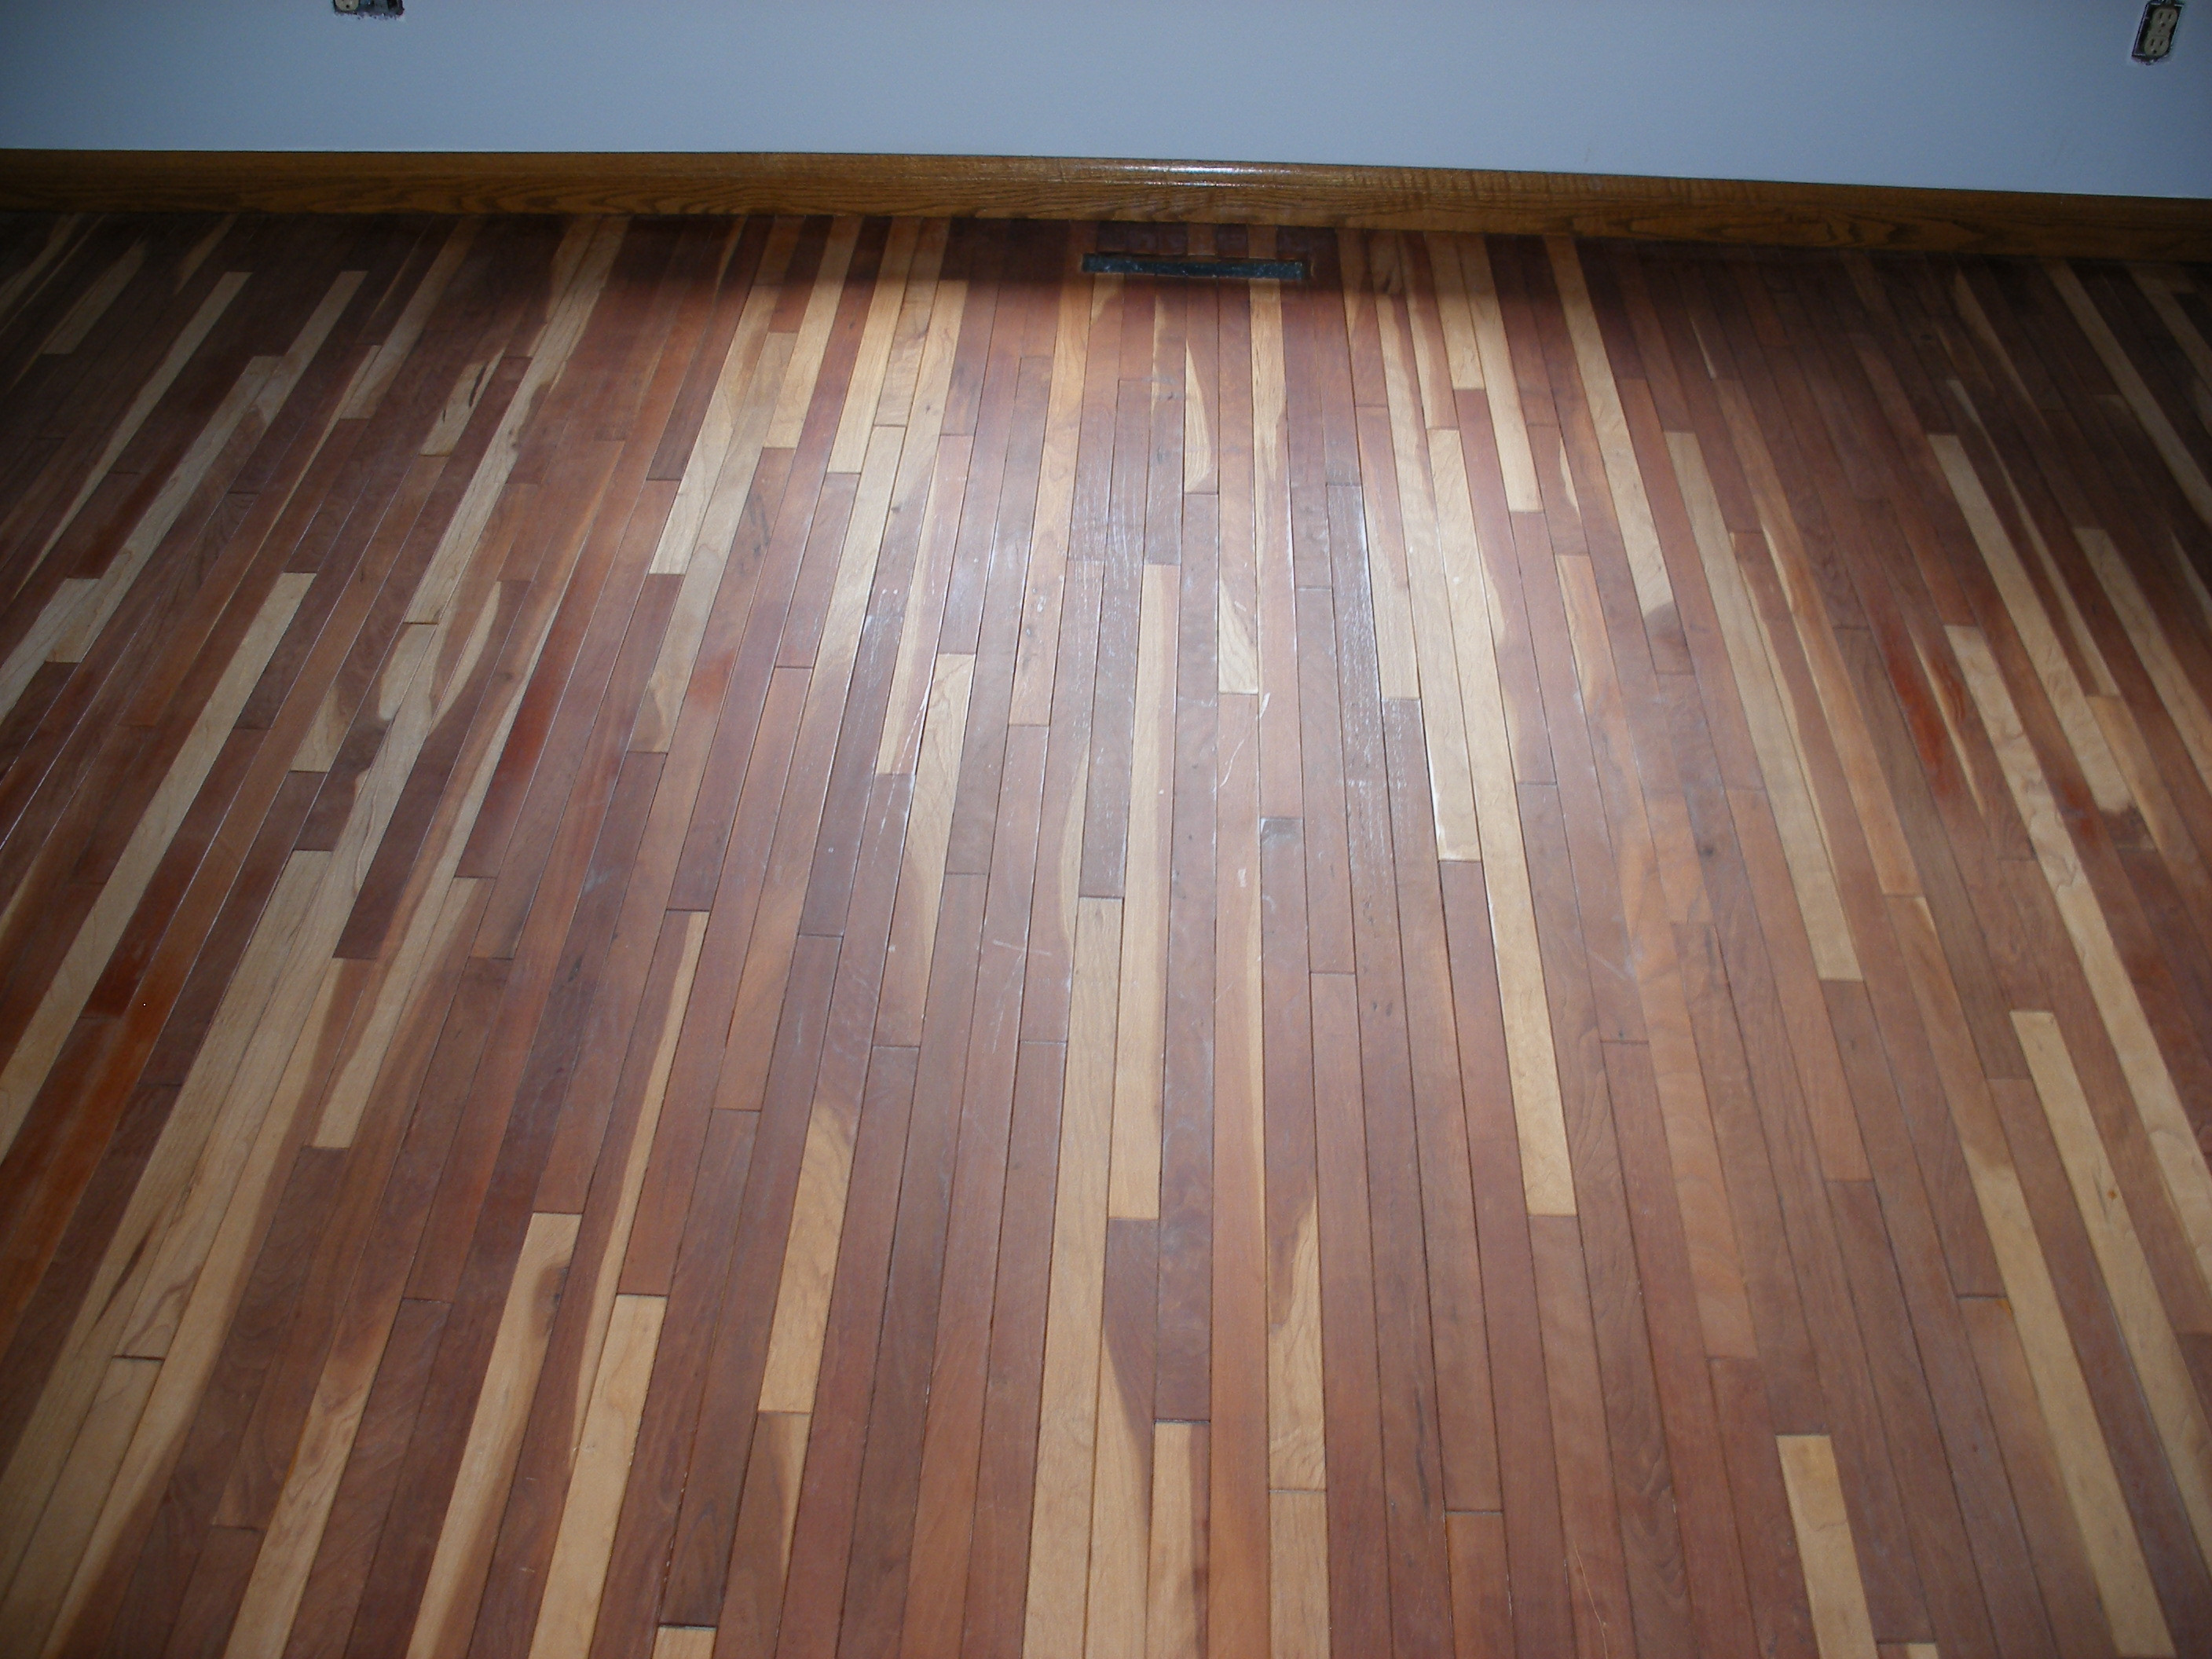 Staining Hardwood Floors Cost